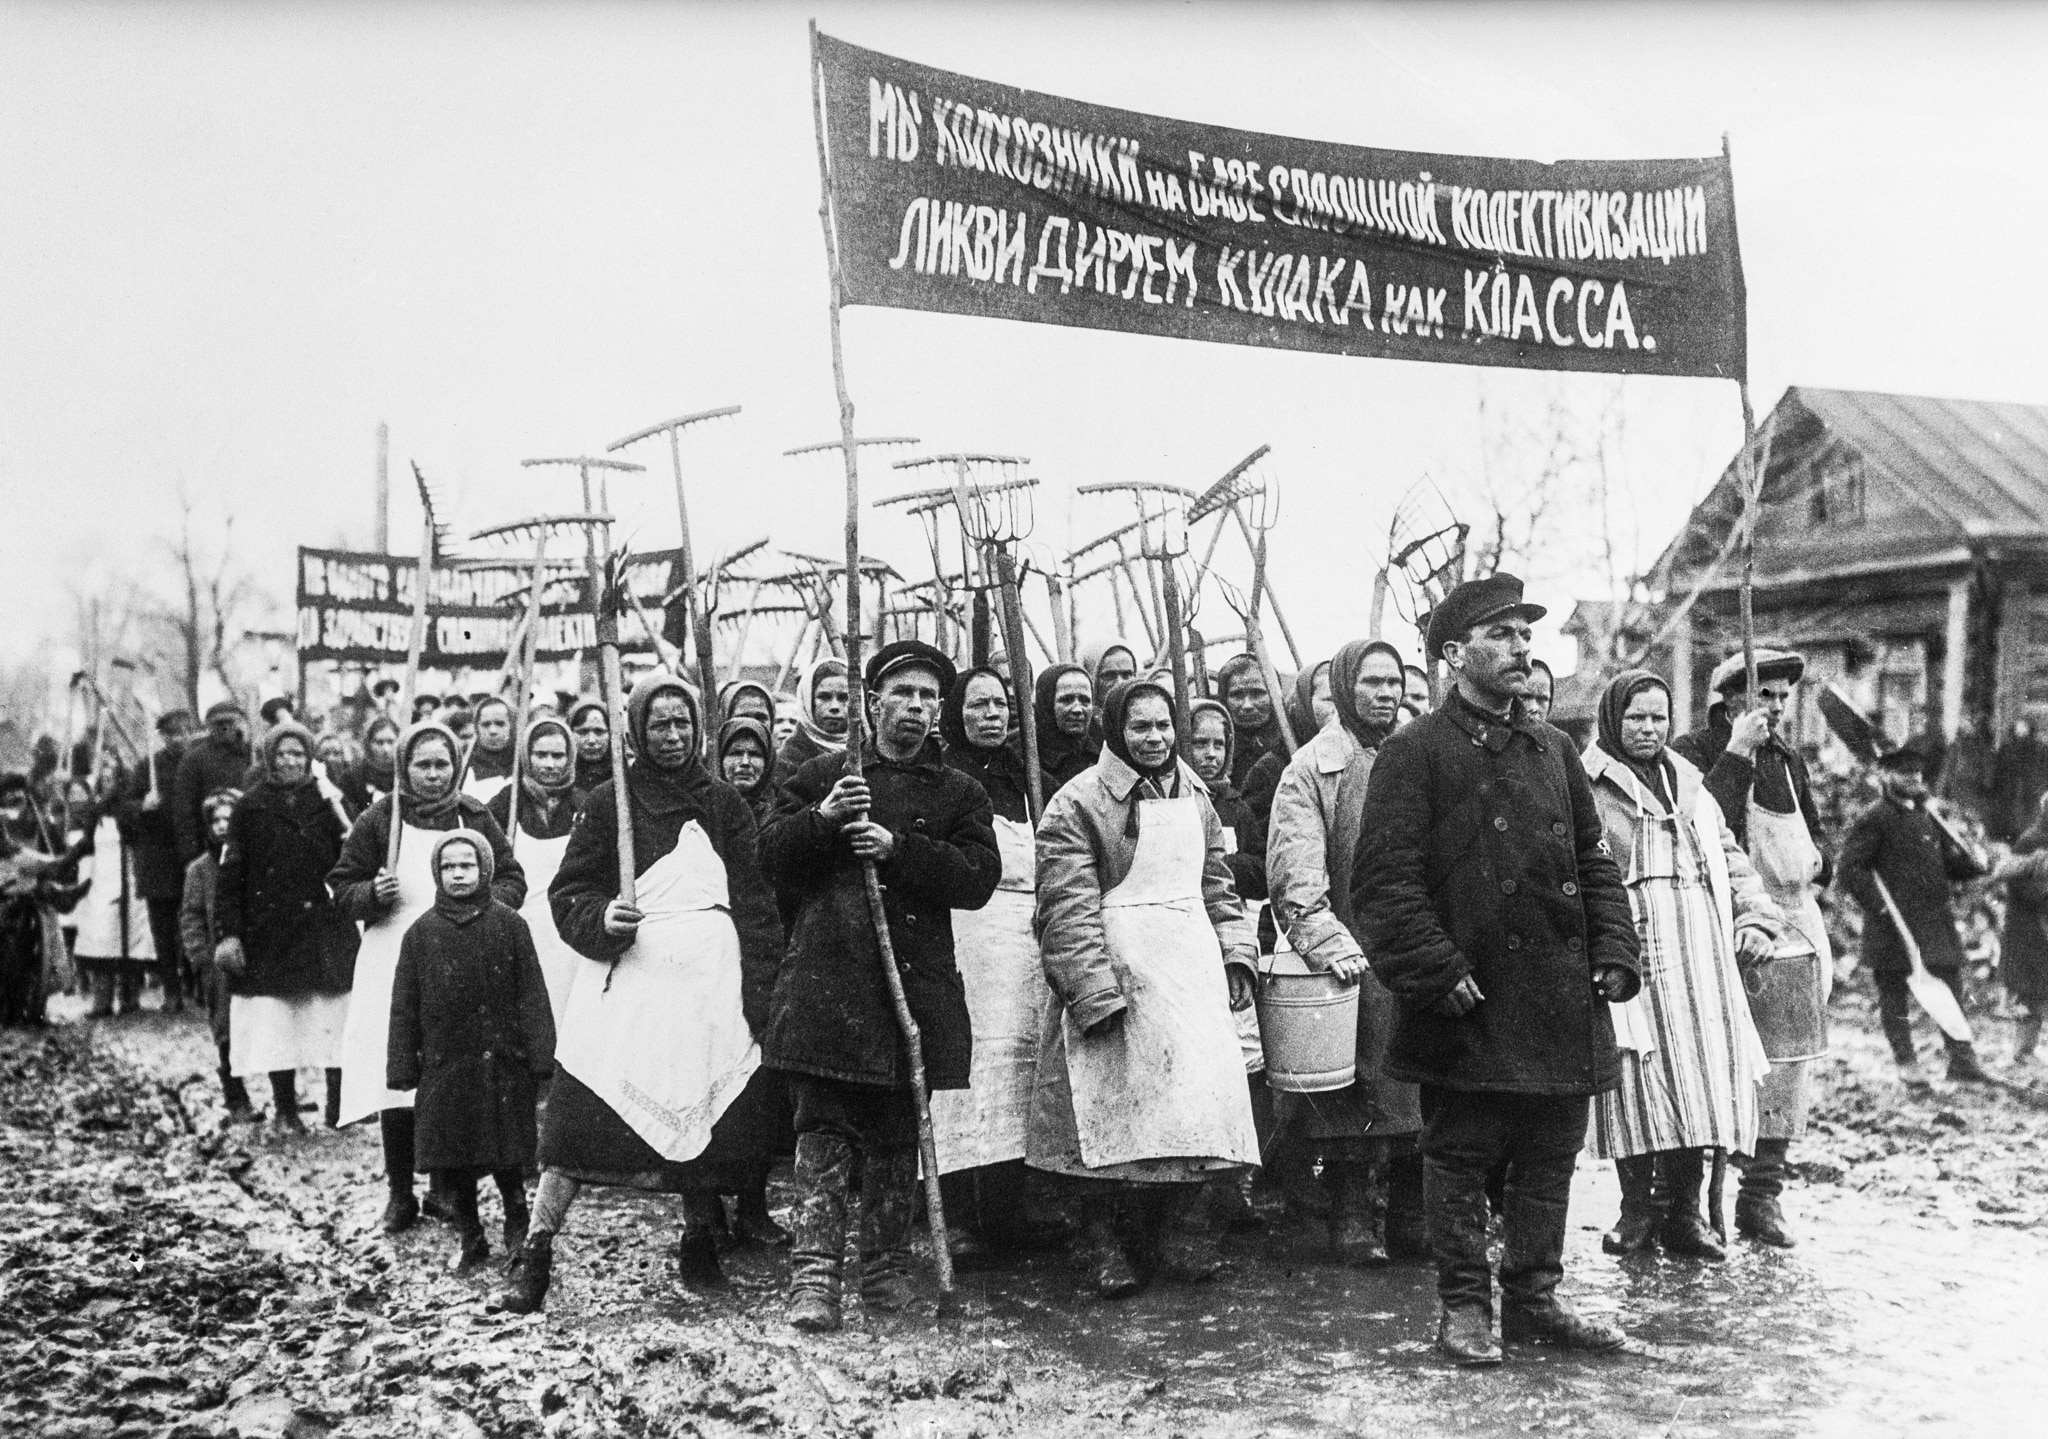 Men, women and children in rude clothing marching as group, holding farm implements and banner (© Bettmann/Getty)